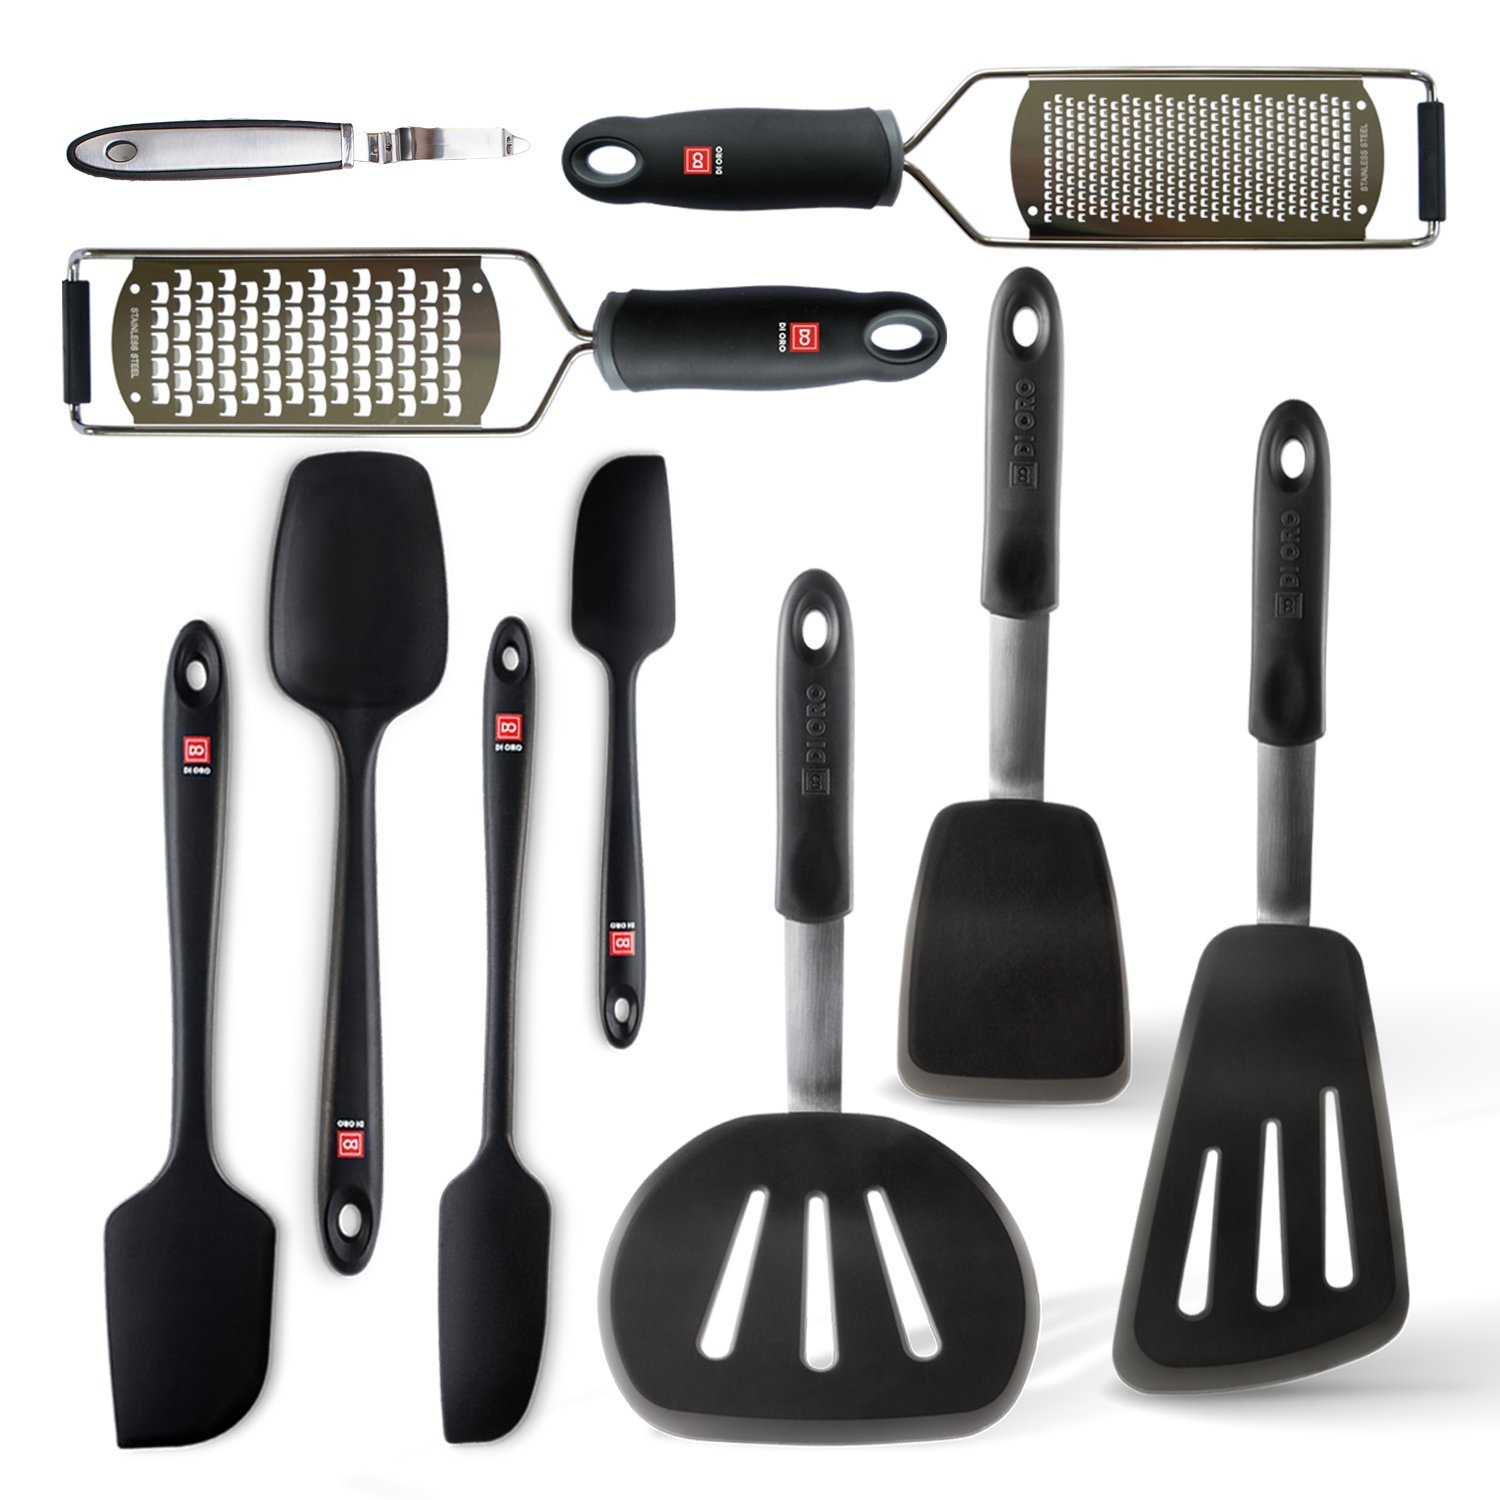 Di Oro Complete 10-Piece Silicone Kitchen Utensil Set -7 Silicone Heat-Resistant Kitchen Spatulas, Zester, Cheese Grater, and Potato Peeler - Makes a Great Gift for All Occasions (10 Pc, Black) by di Oro Living